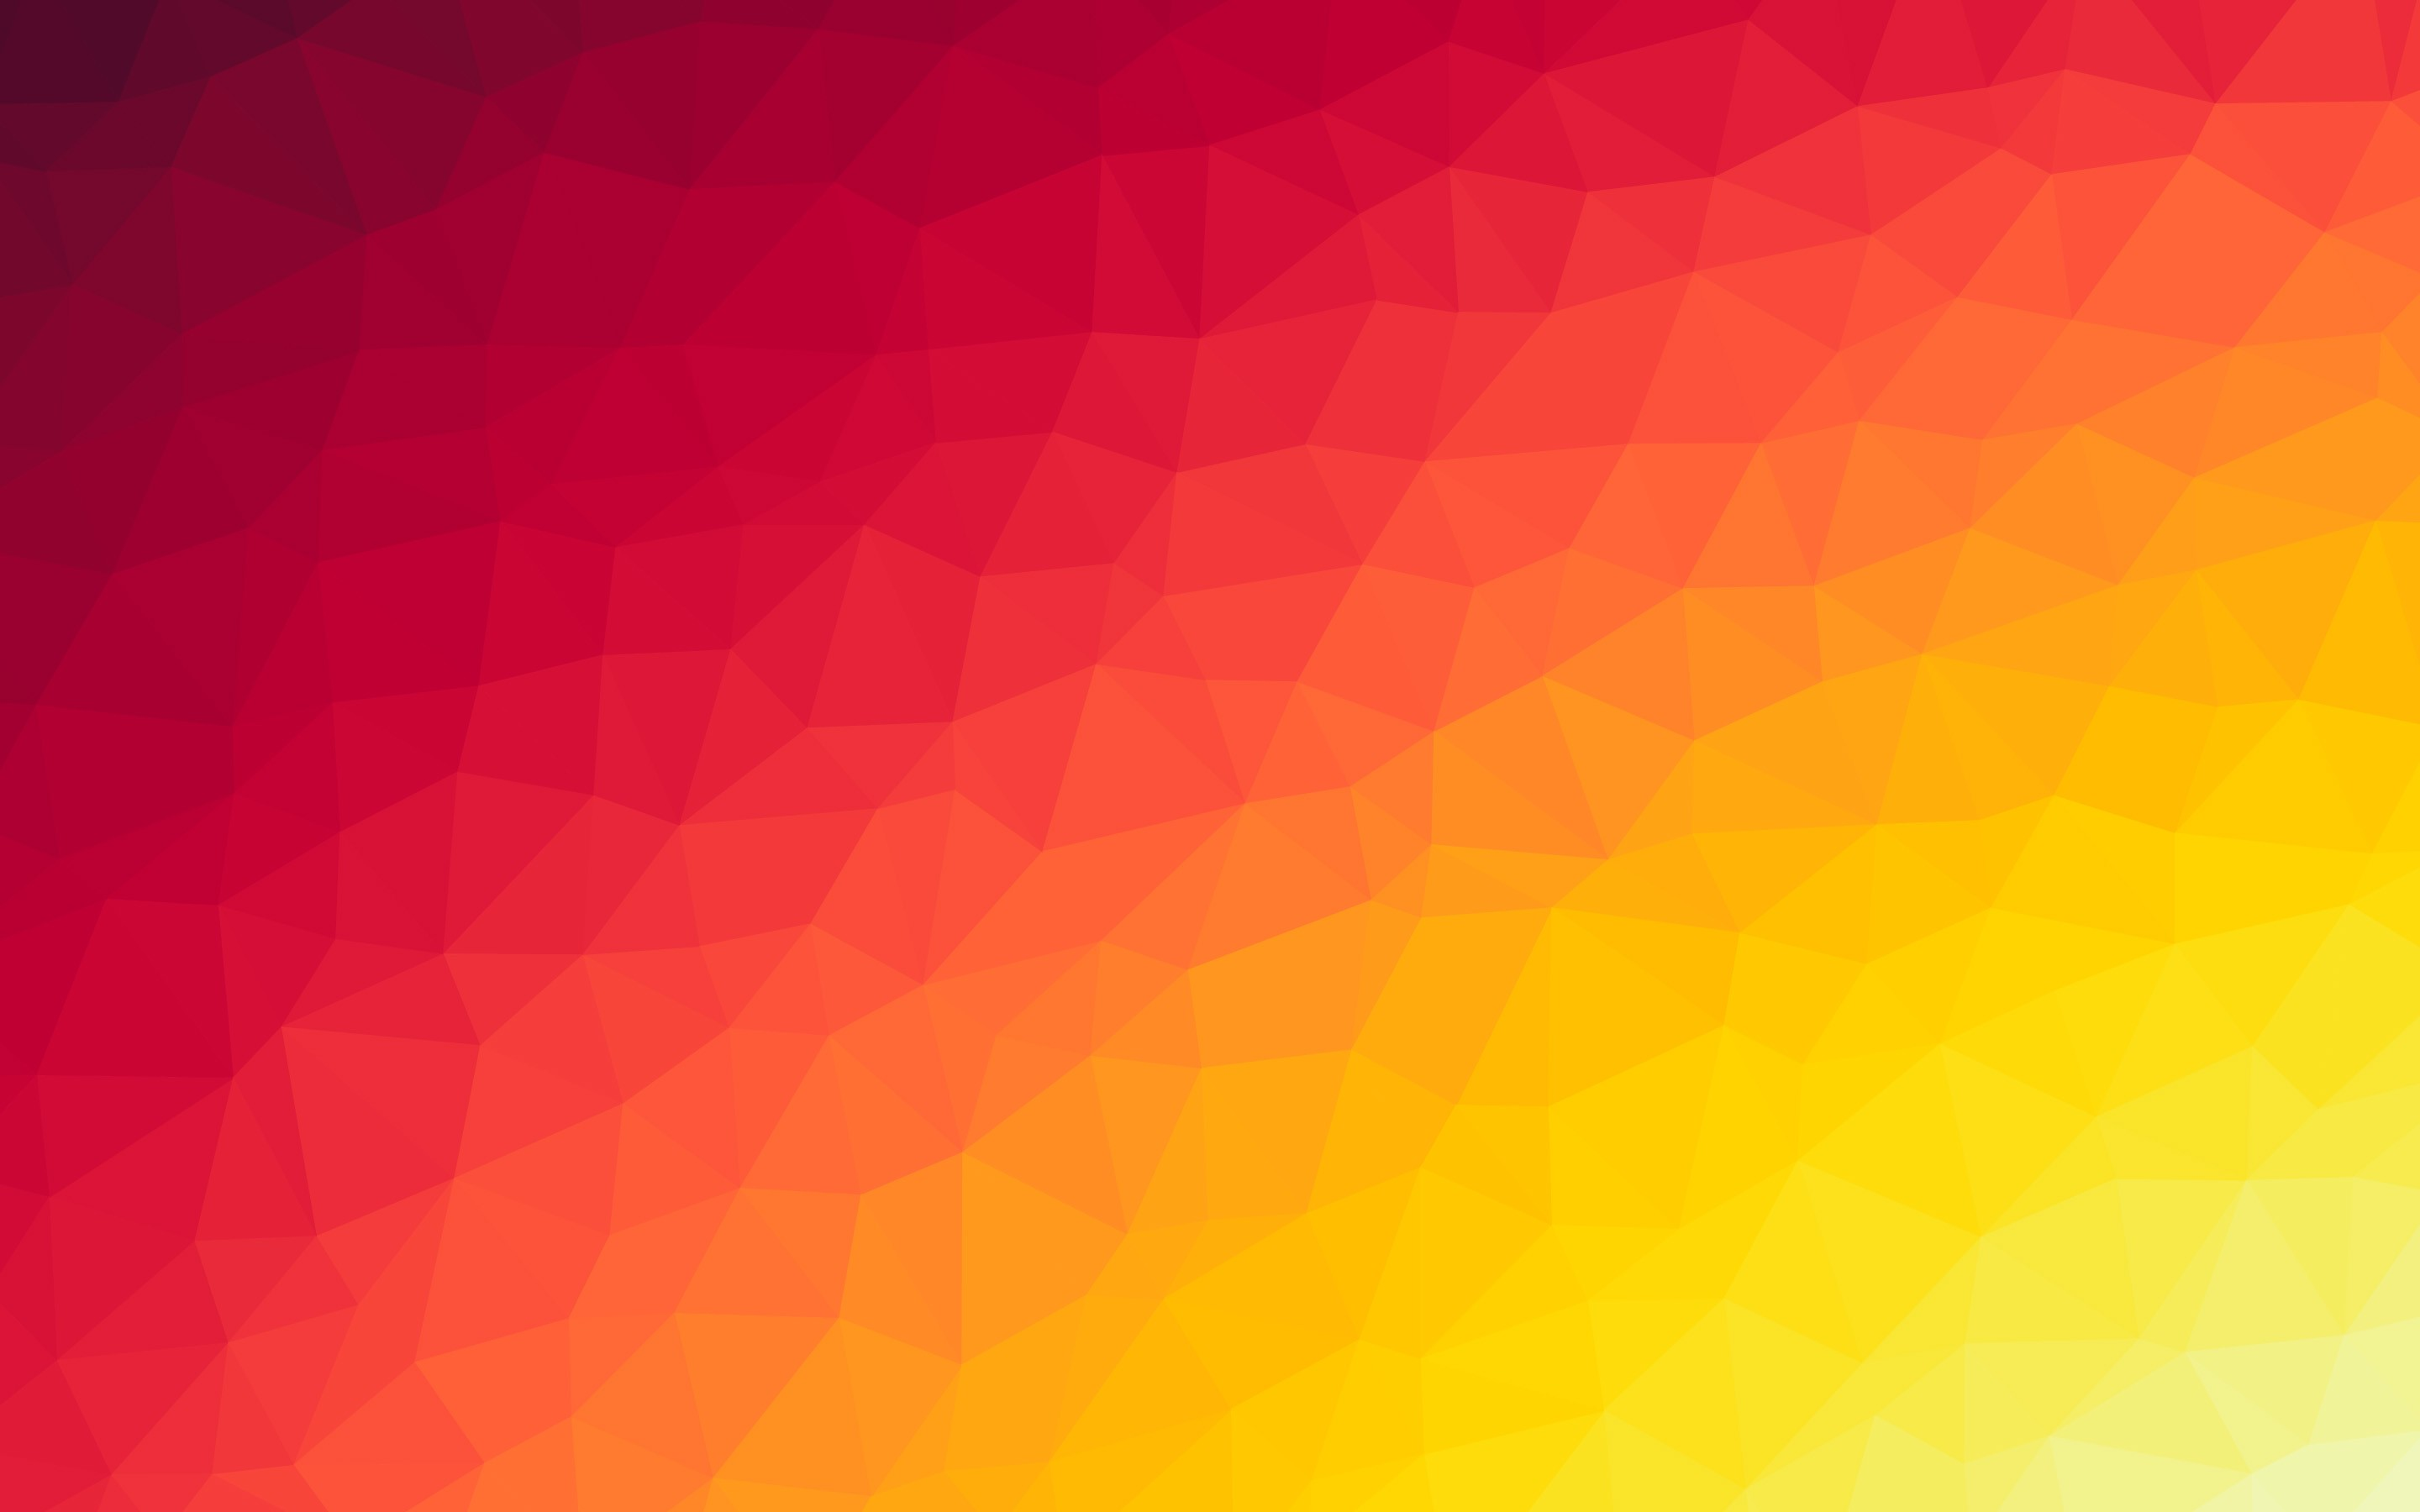 Color background photo